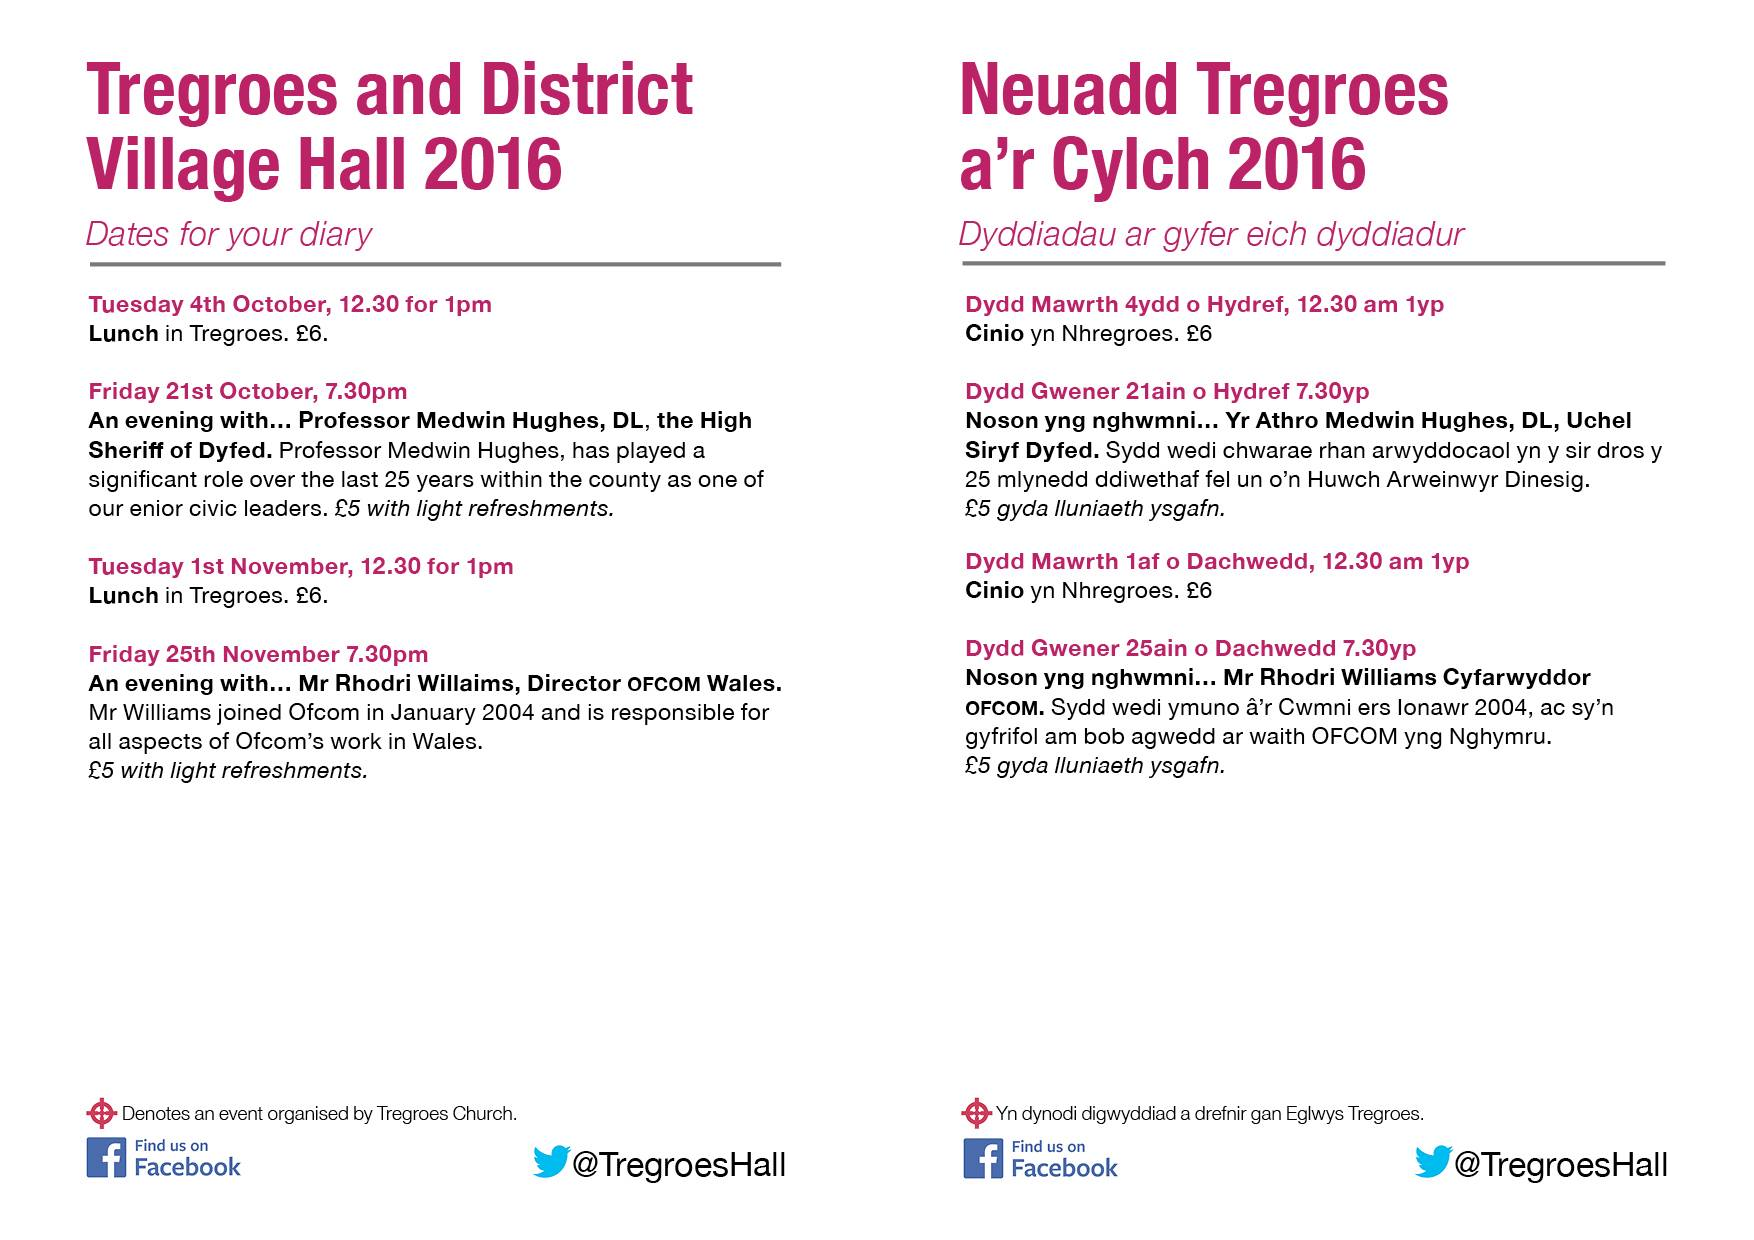 Poster advertising events in Tregroes Hall